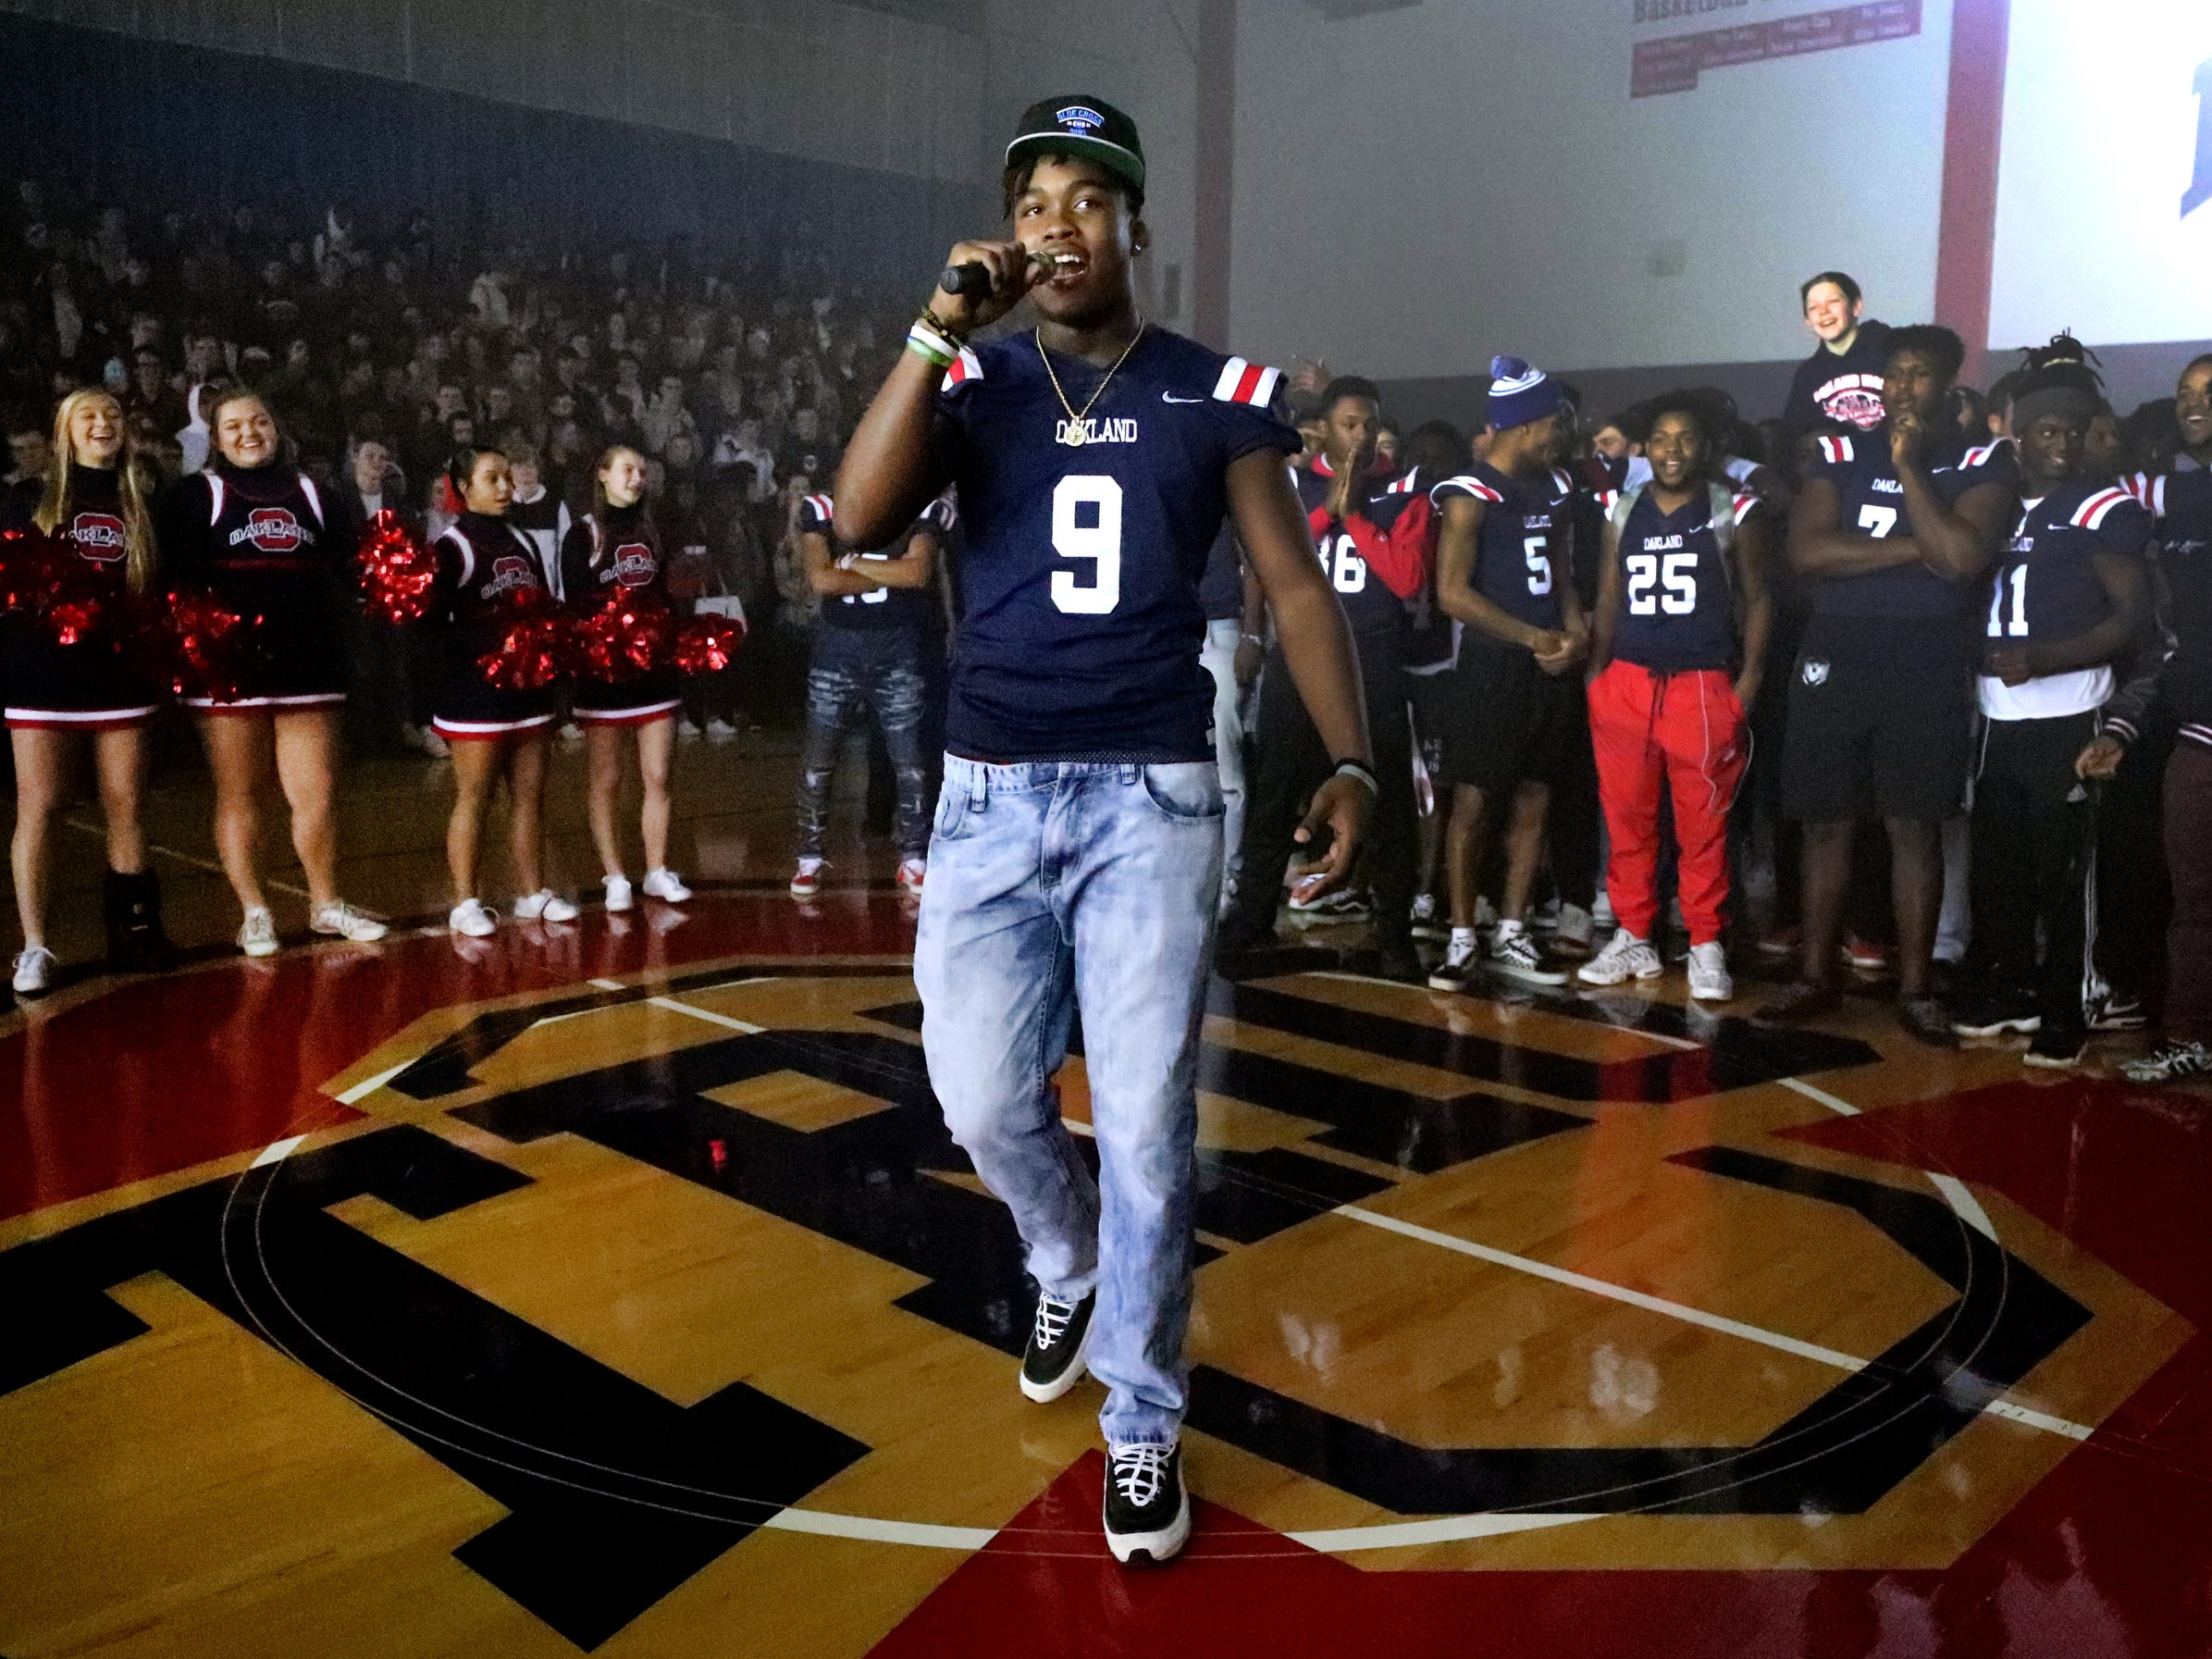 Oakland High School football player and senior Tekoy Randolph (9) speaks to the student body during a pep rally, on Monday, Dec. 3, 2018 at the school after the football team won the 6A State Championship BlueCross Bowl game against Westhaven on Thursday.